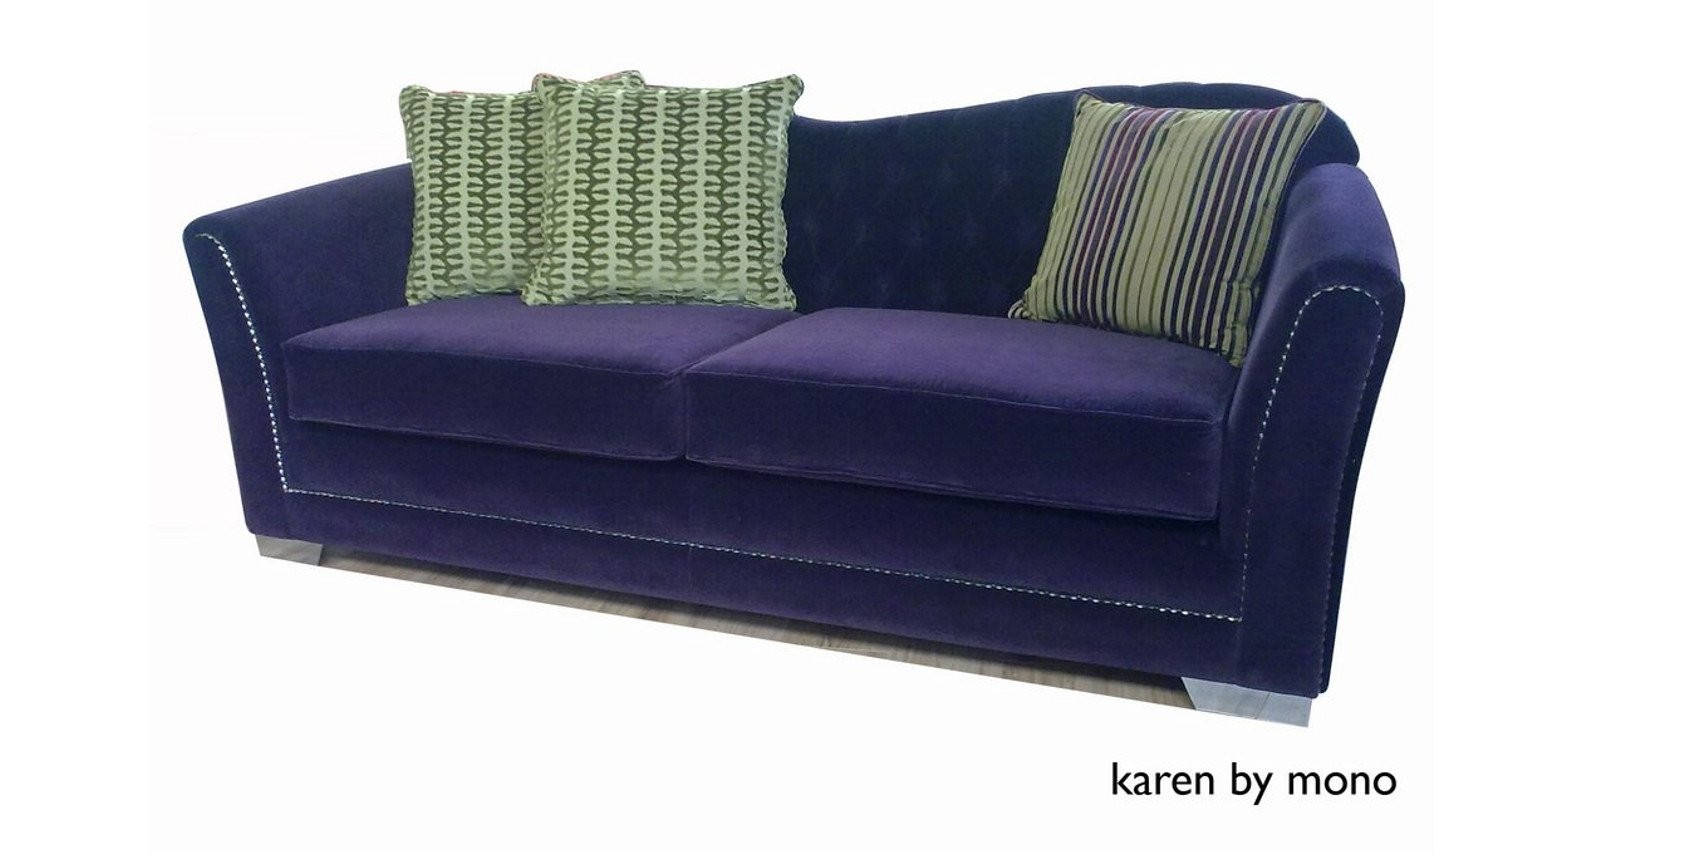 Karen Sofa – Mono Furniture Regarding Karen Sofa Chairs (Image 9 of 20)